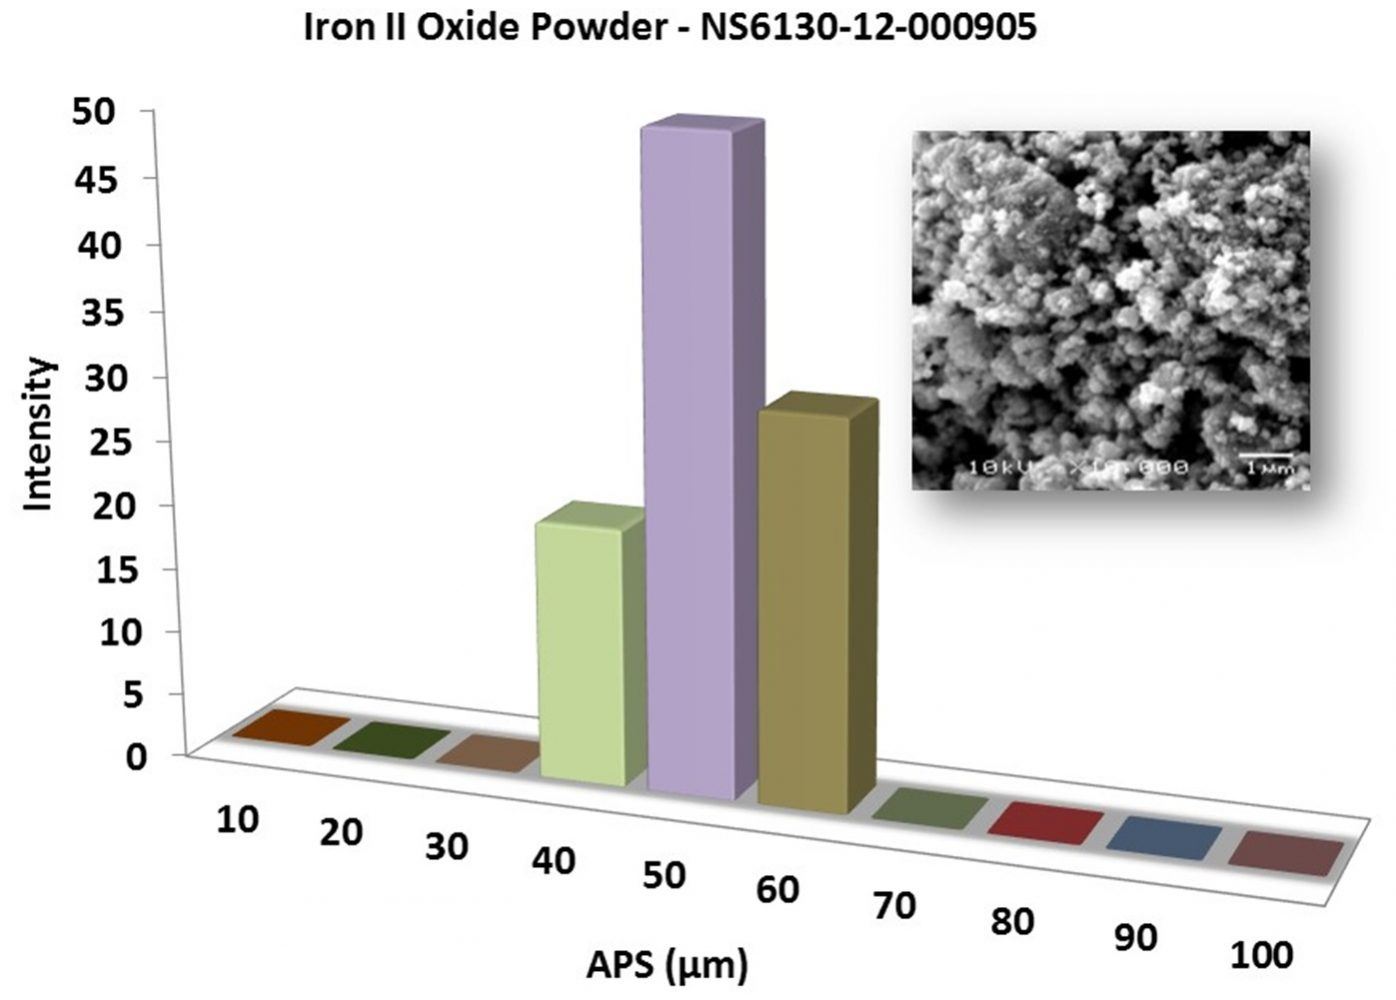 Iron II Oxide Powder